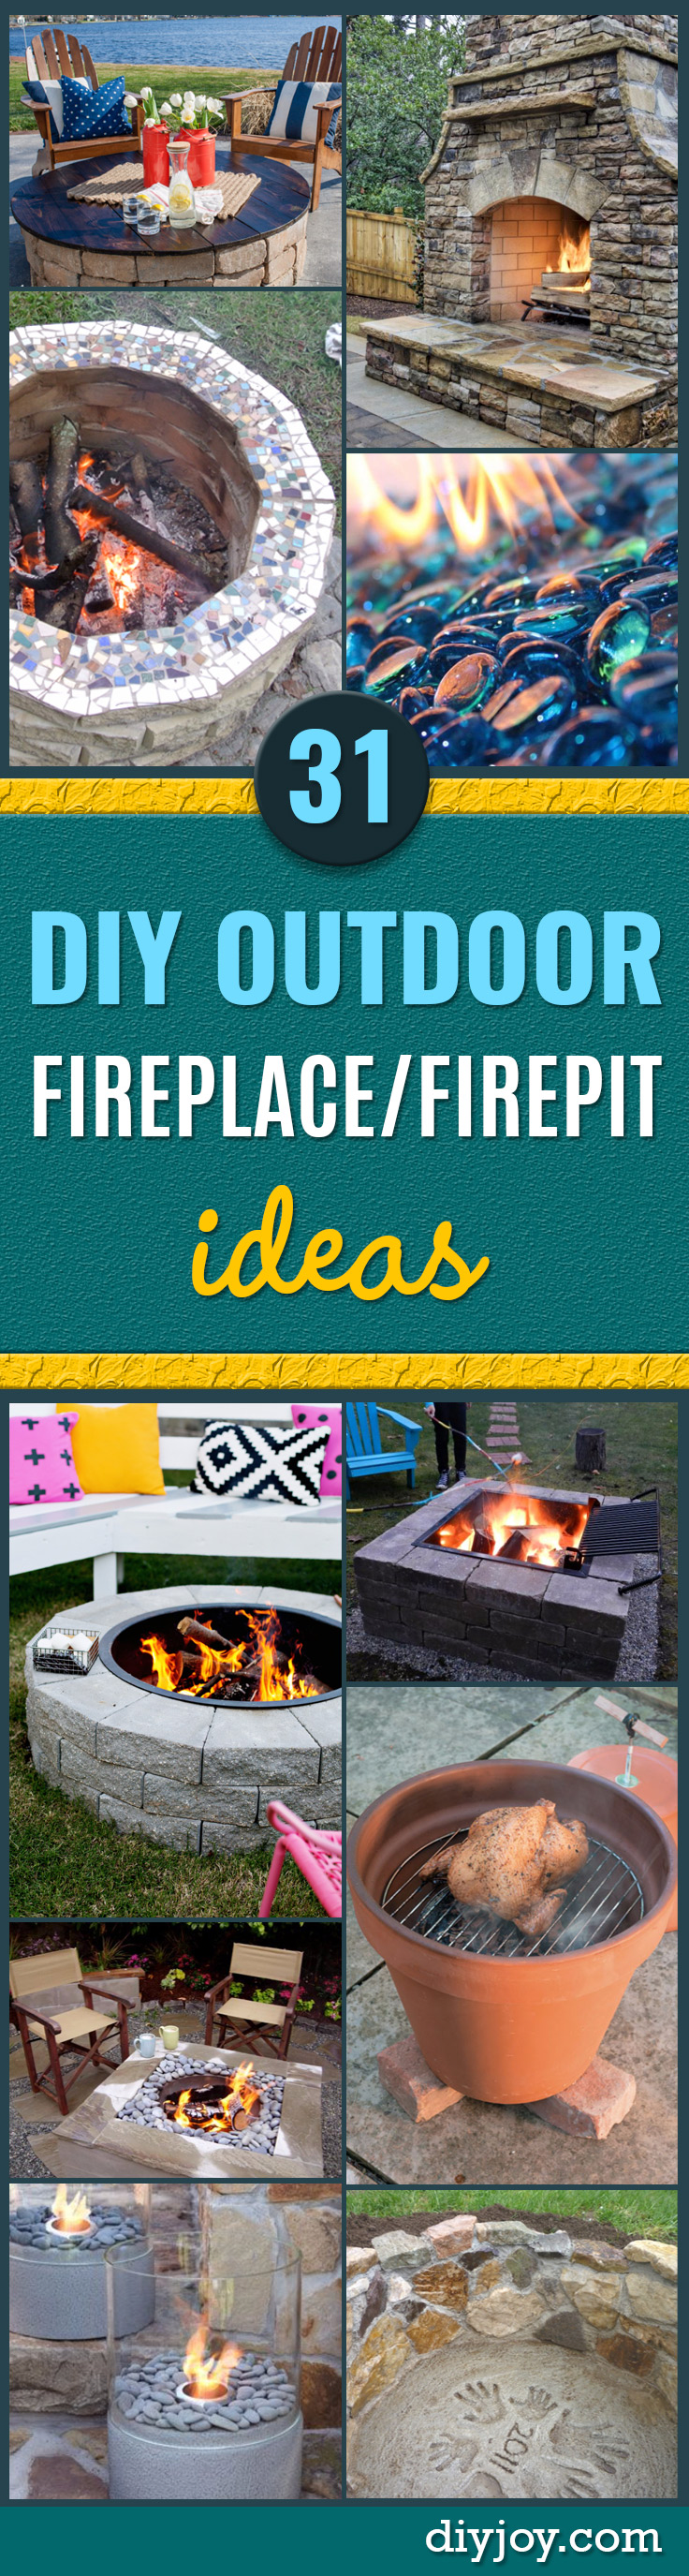 DIY Fireplace Ideas - Do It Yourself Firepit Projects and Fireplaces for Your Yard, Patio, Porch and Home. Outdoor Fire Pit Tutorials for Backyard with Easy Step by Step Tutorials - Cool DIY Projects for Men and Women http://diyjoy.com/diy-fireplace-ideas